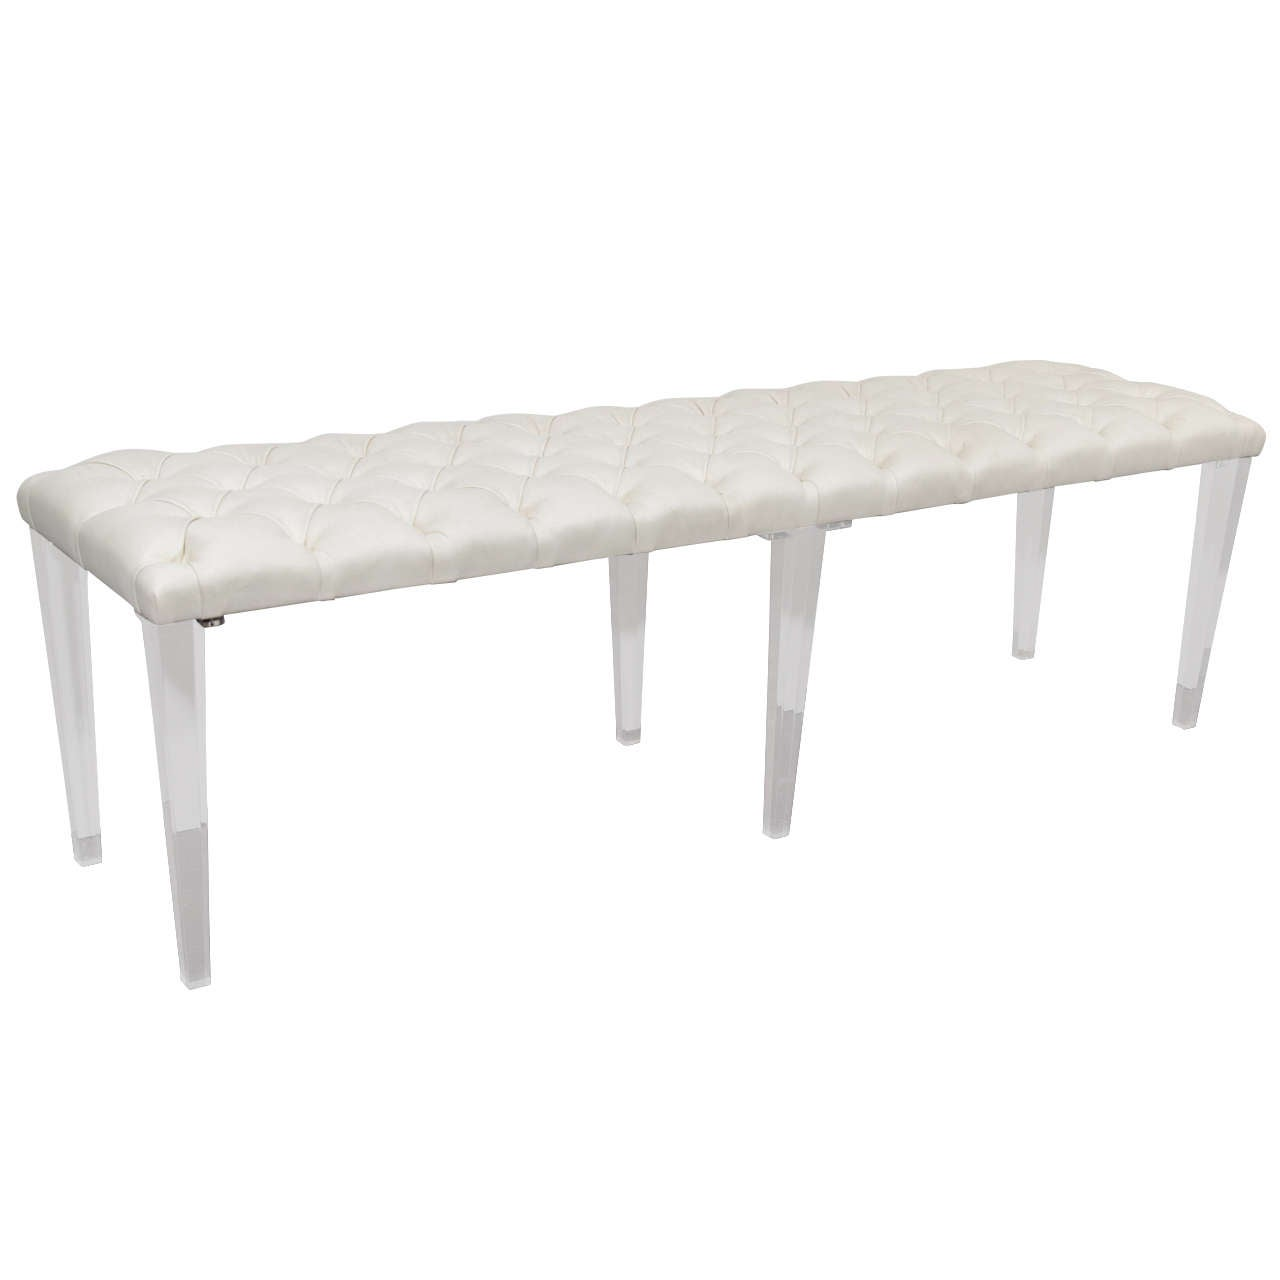 Custom Tufted Leather with Lucite Leg Bench